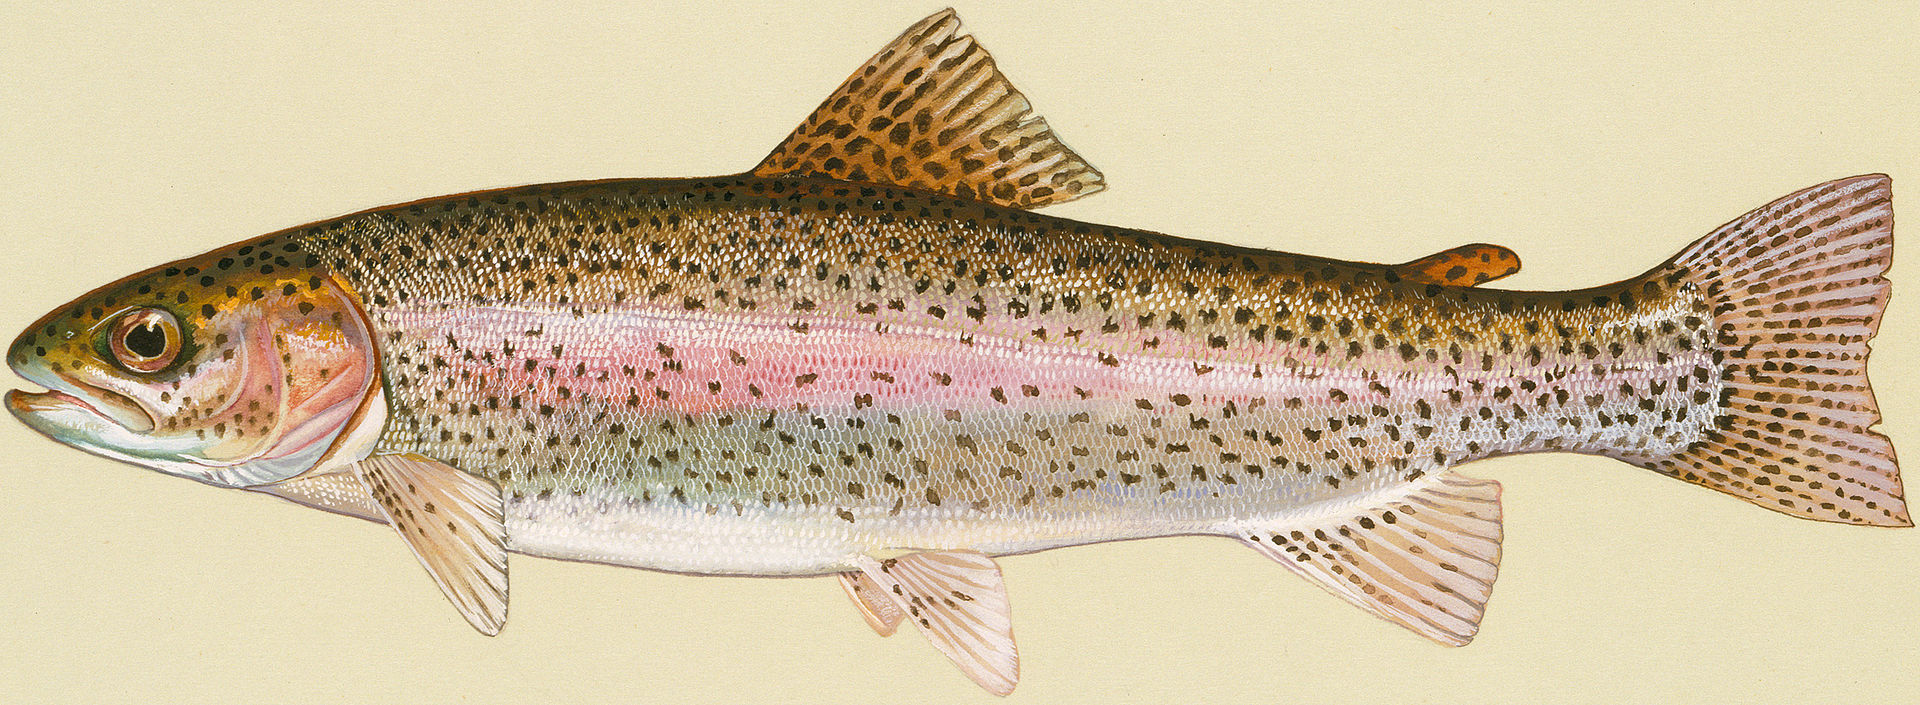 Rainbow Trout - Source: Wikipedia